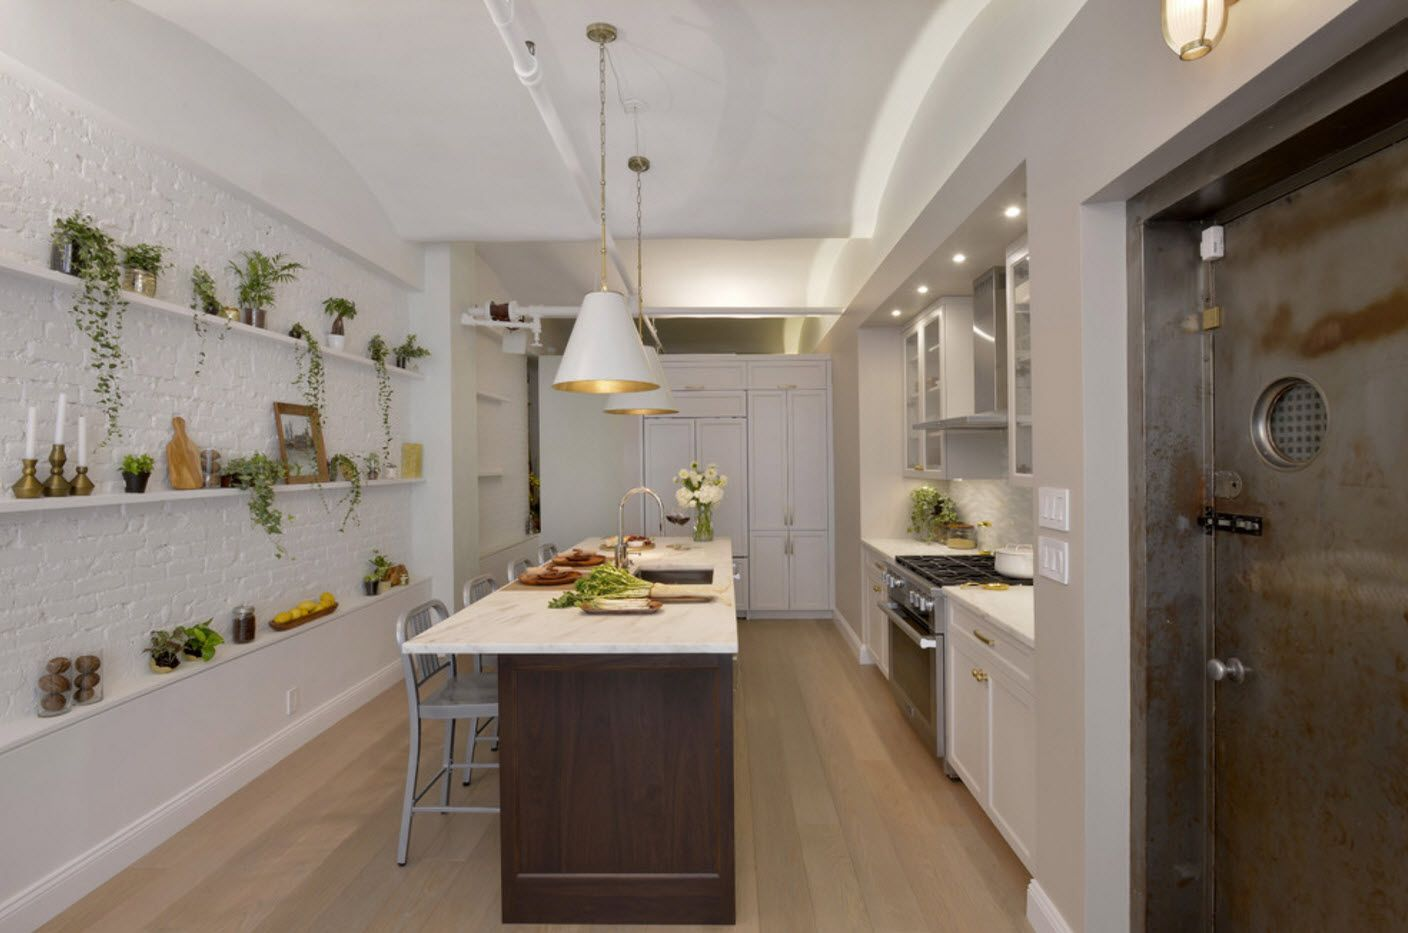 Patel colors and natural plants in the modern kitchen